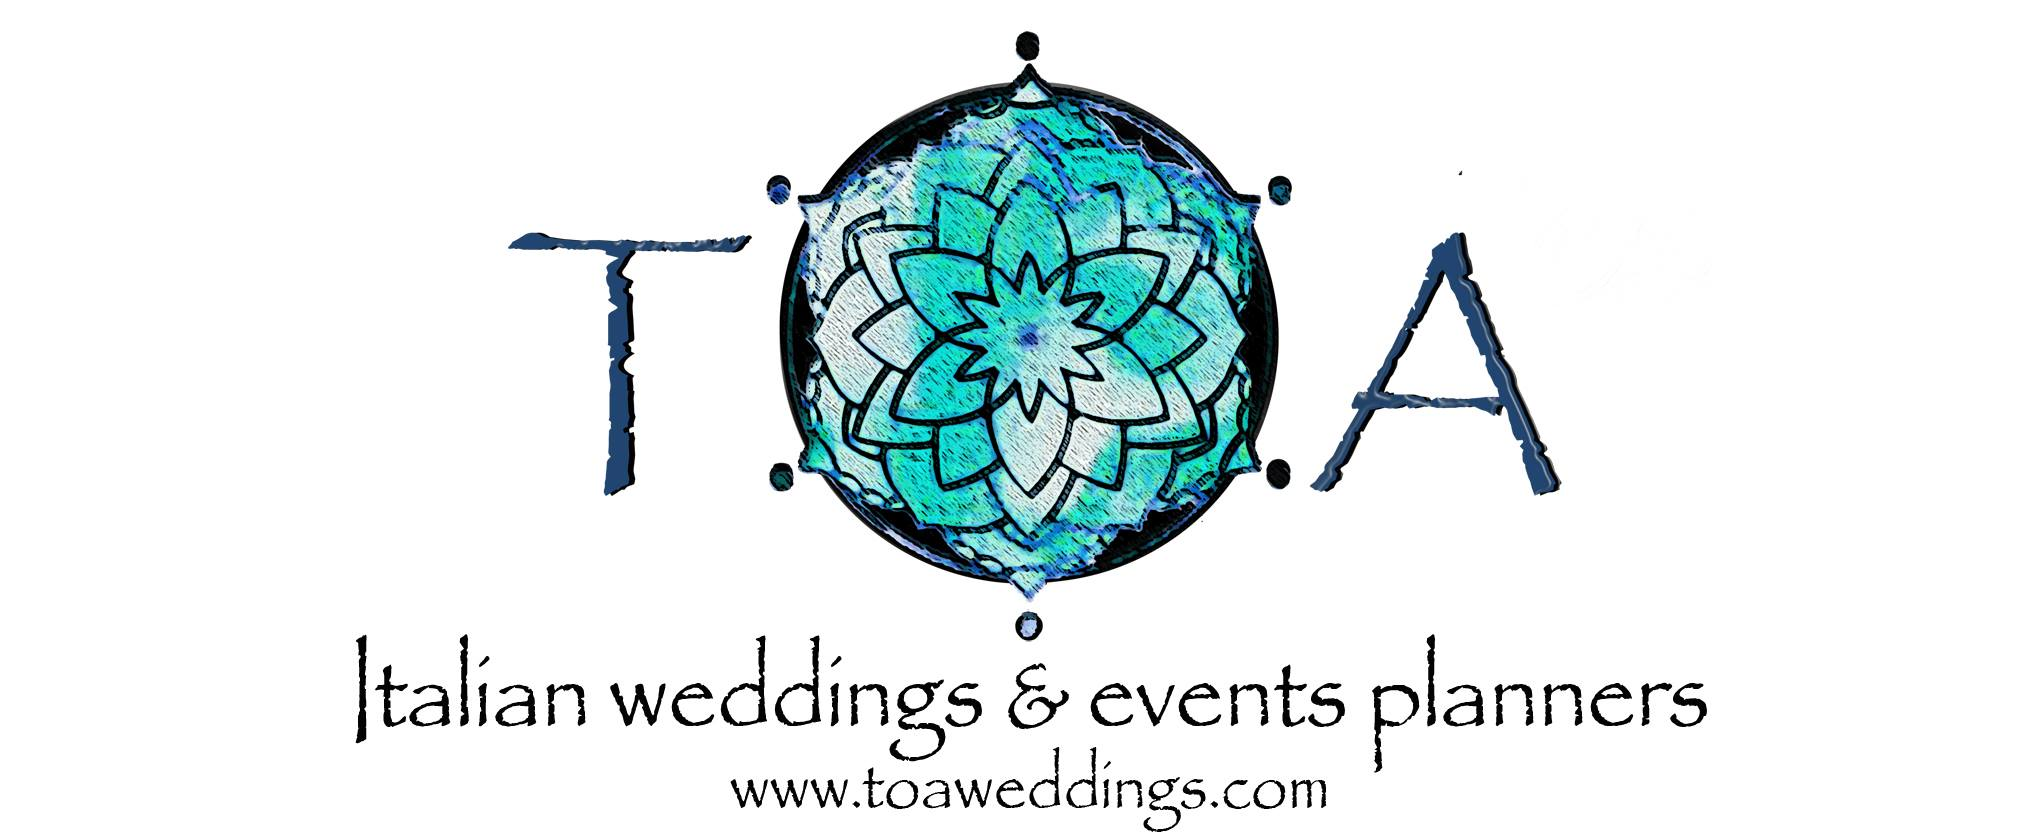 Wedding & Event Manager and Designer